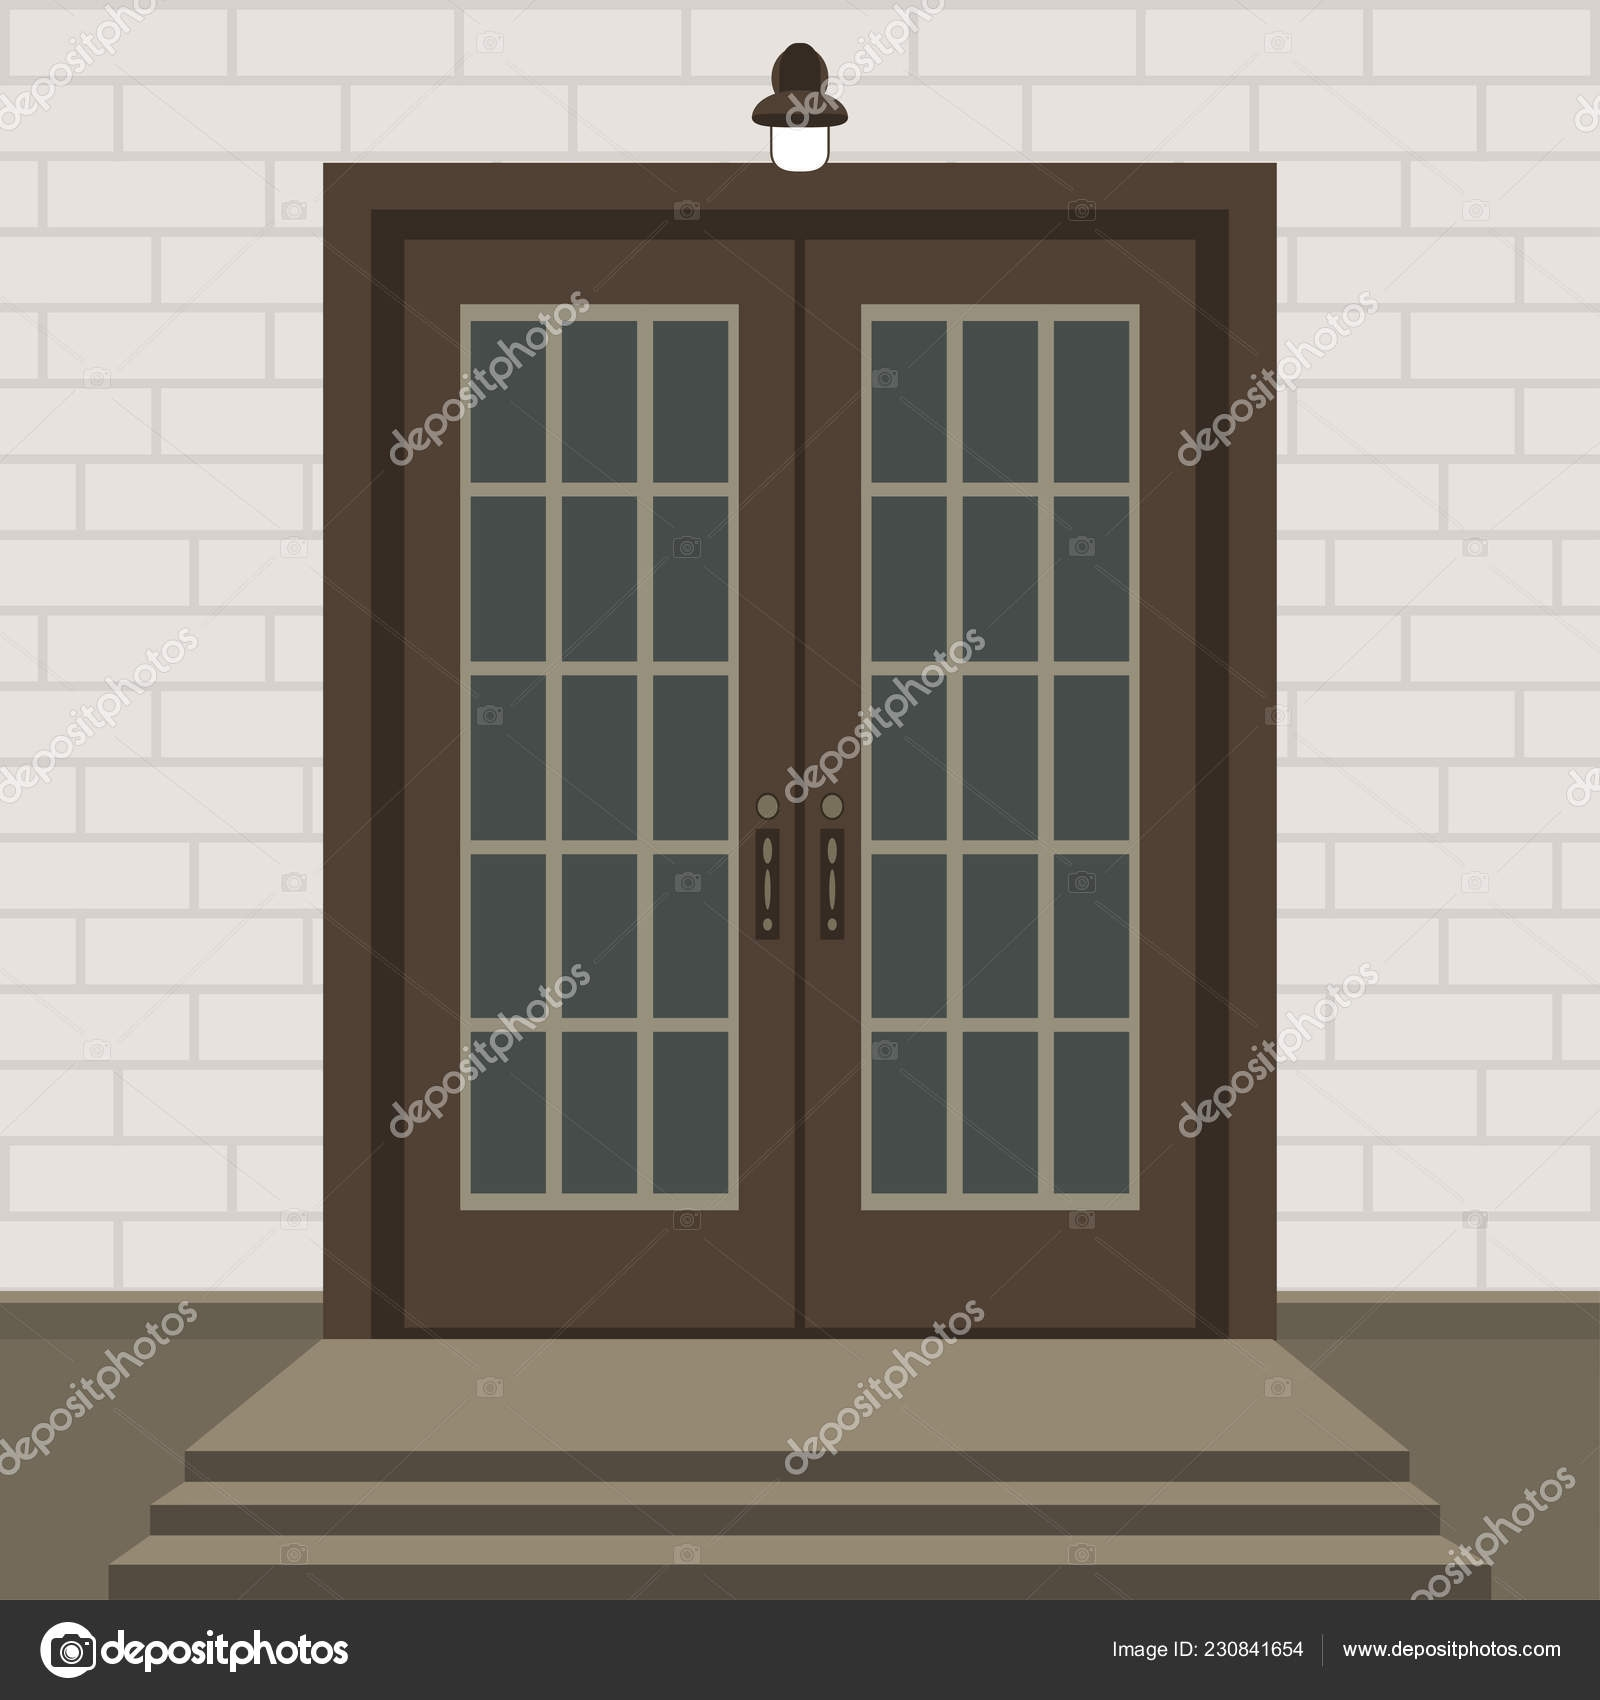 Front Porch Brick Steps Designs House Door Front Doorstep Steps | Brick Front Step Designs | Patio | Entry | Front Entrance Front Porch Wall Tile | Raised Front | Bluestone Treads 24 Inch Rise